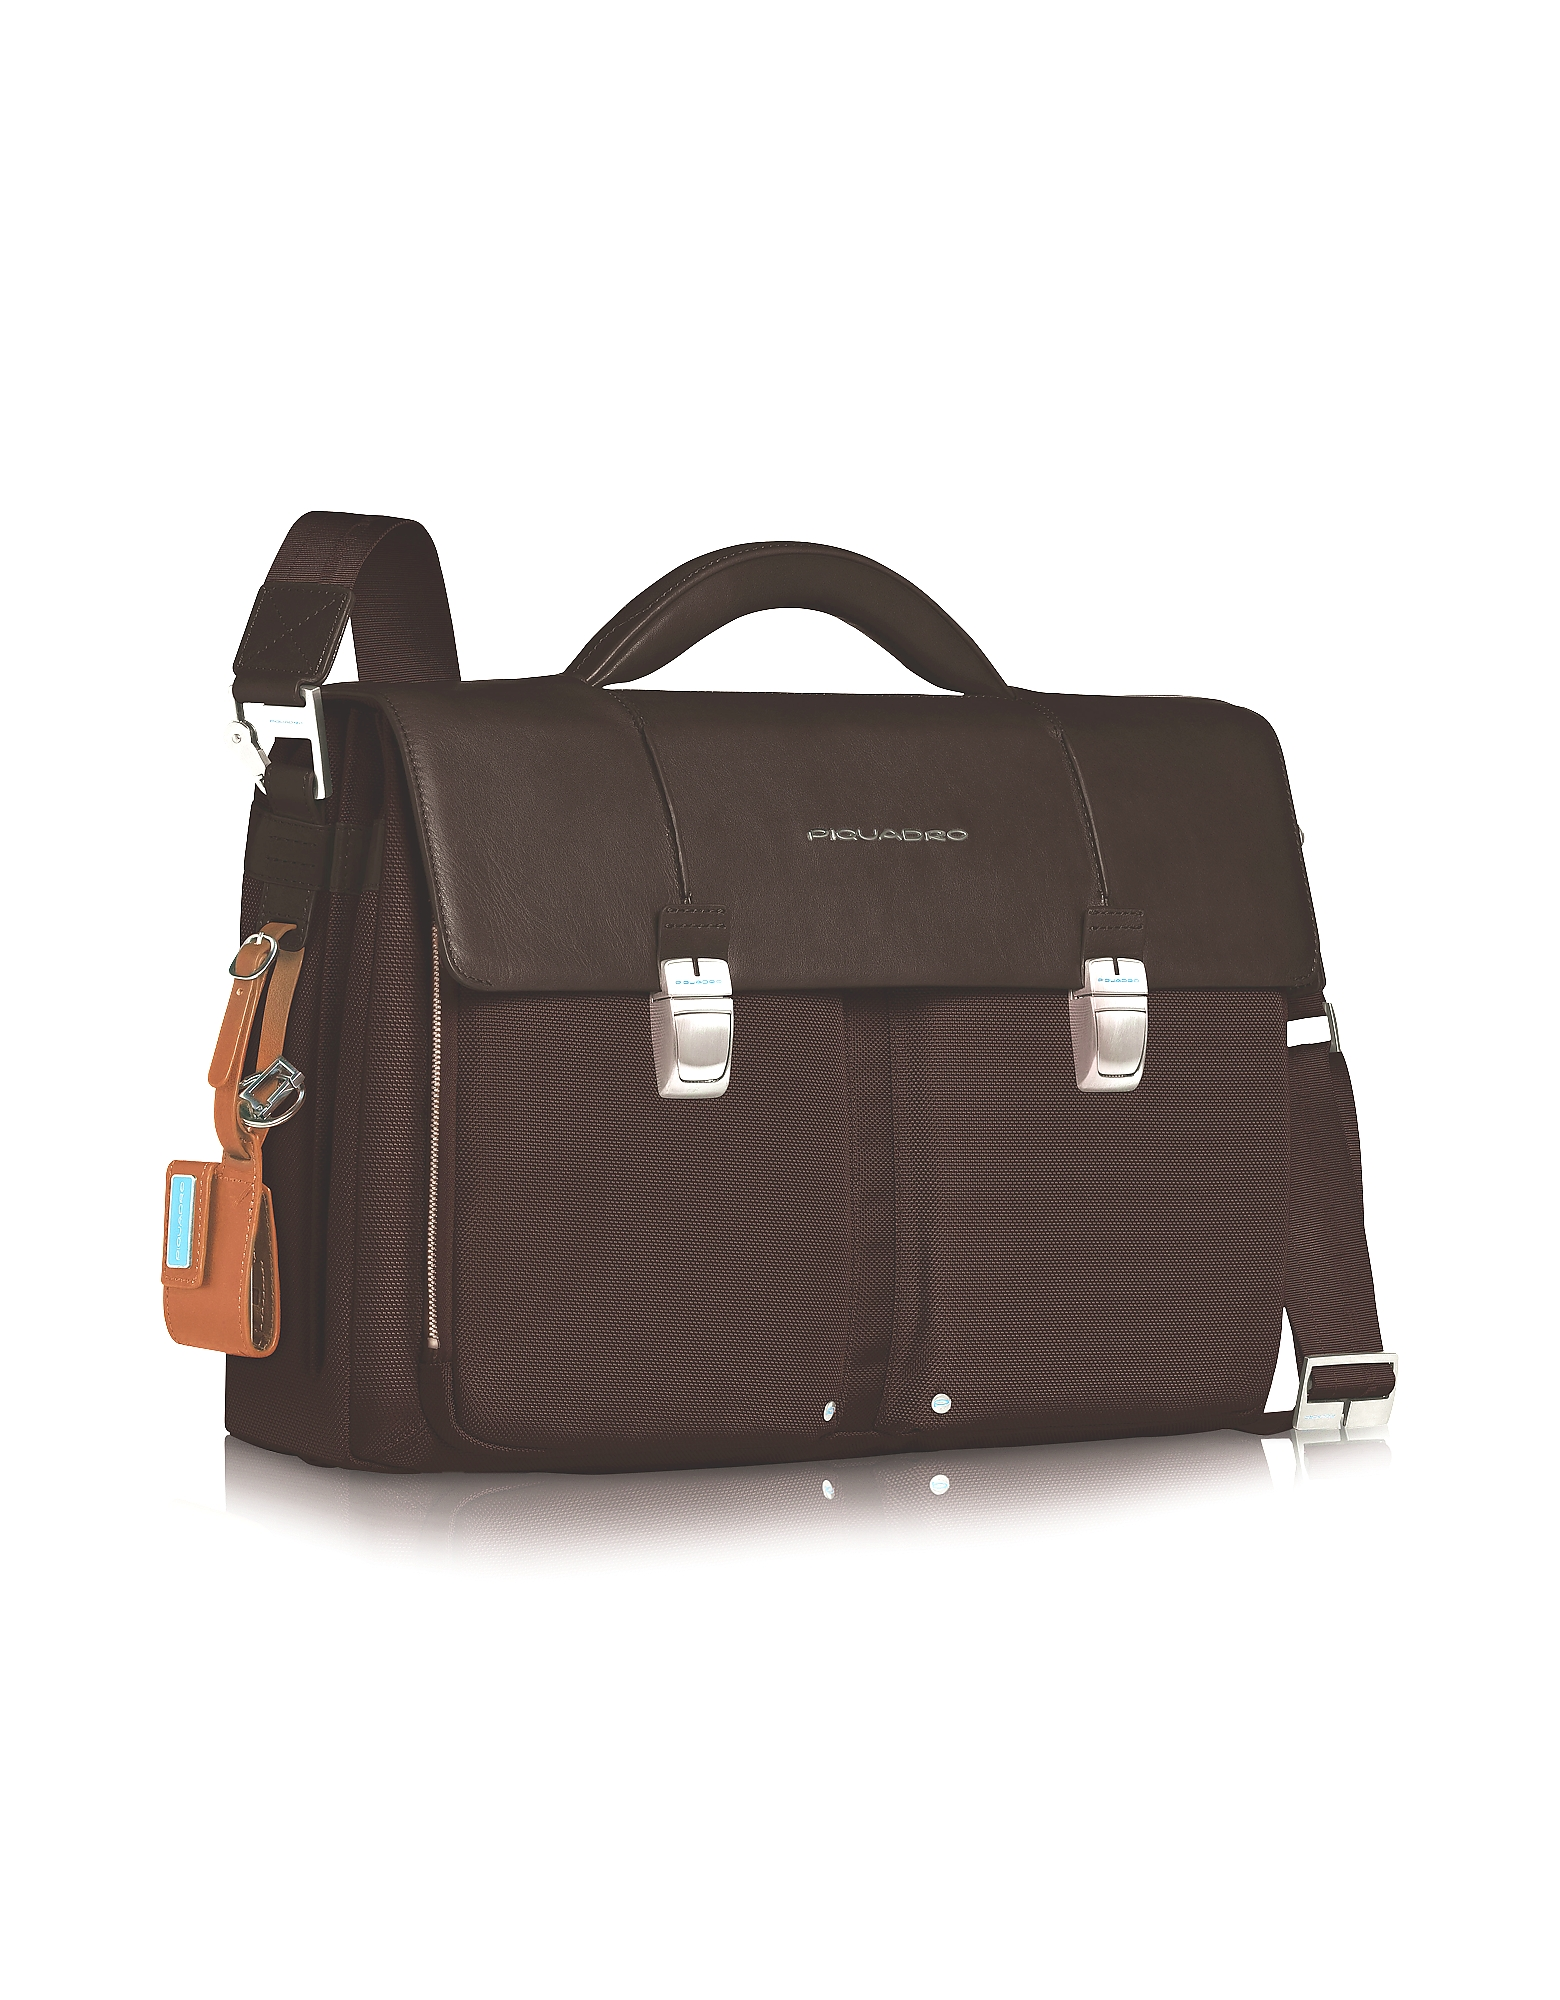 Piquadro Briefcases, Link - Double Front Pocket Double Gusset 15